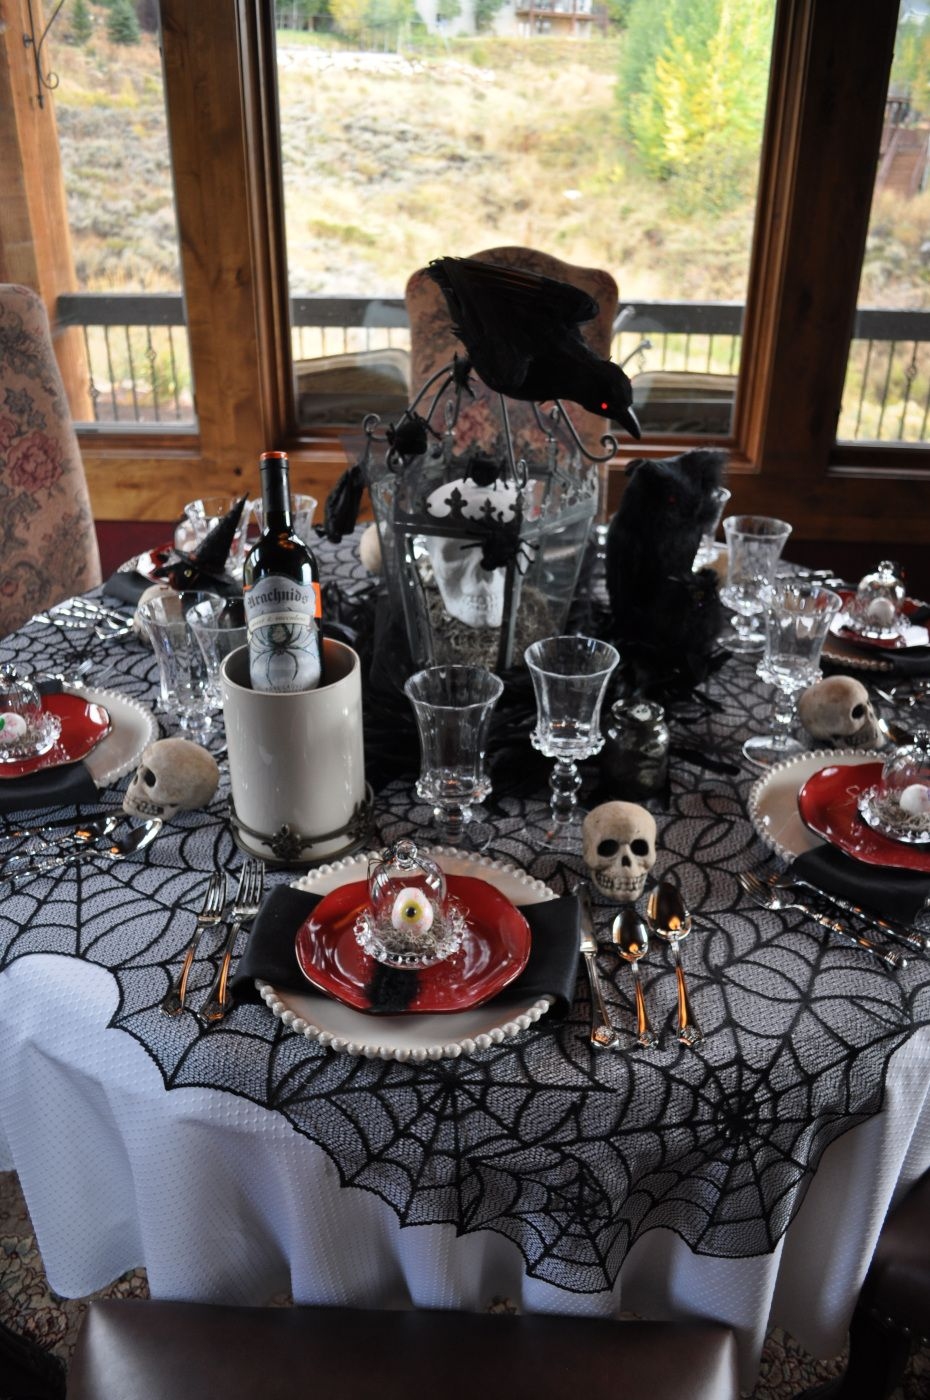 Superieur Halloween Table Setting. Love Those Little Cloches With A Spooky Eyeball.